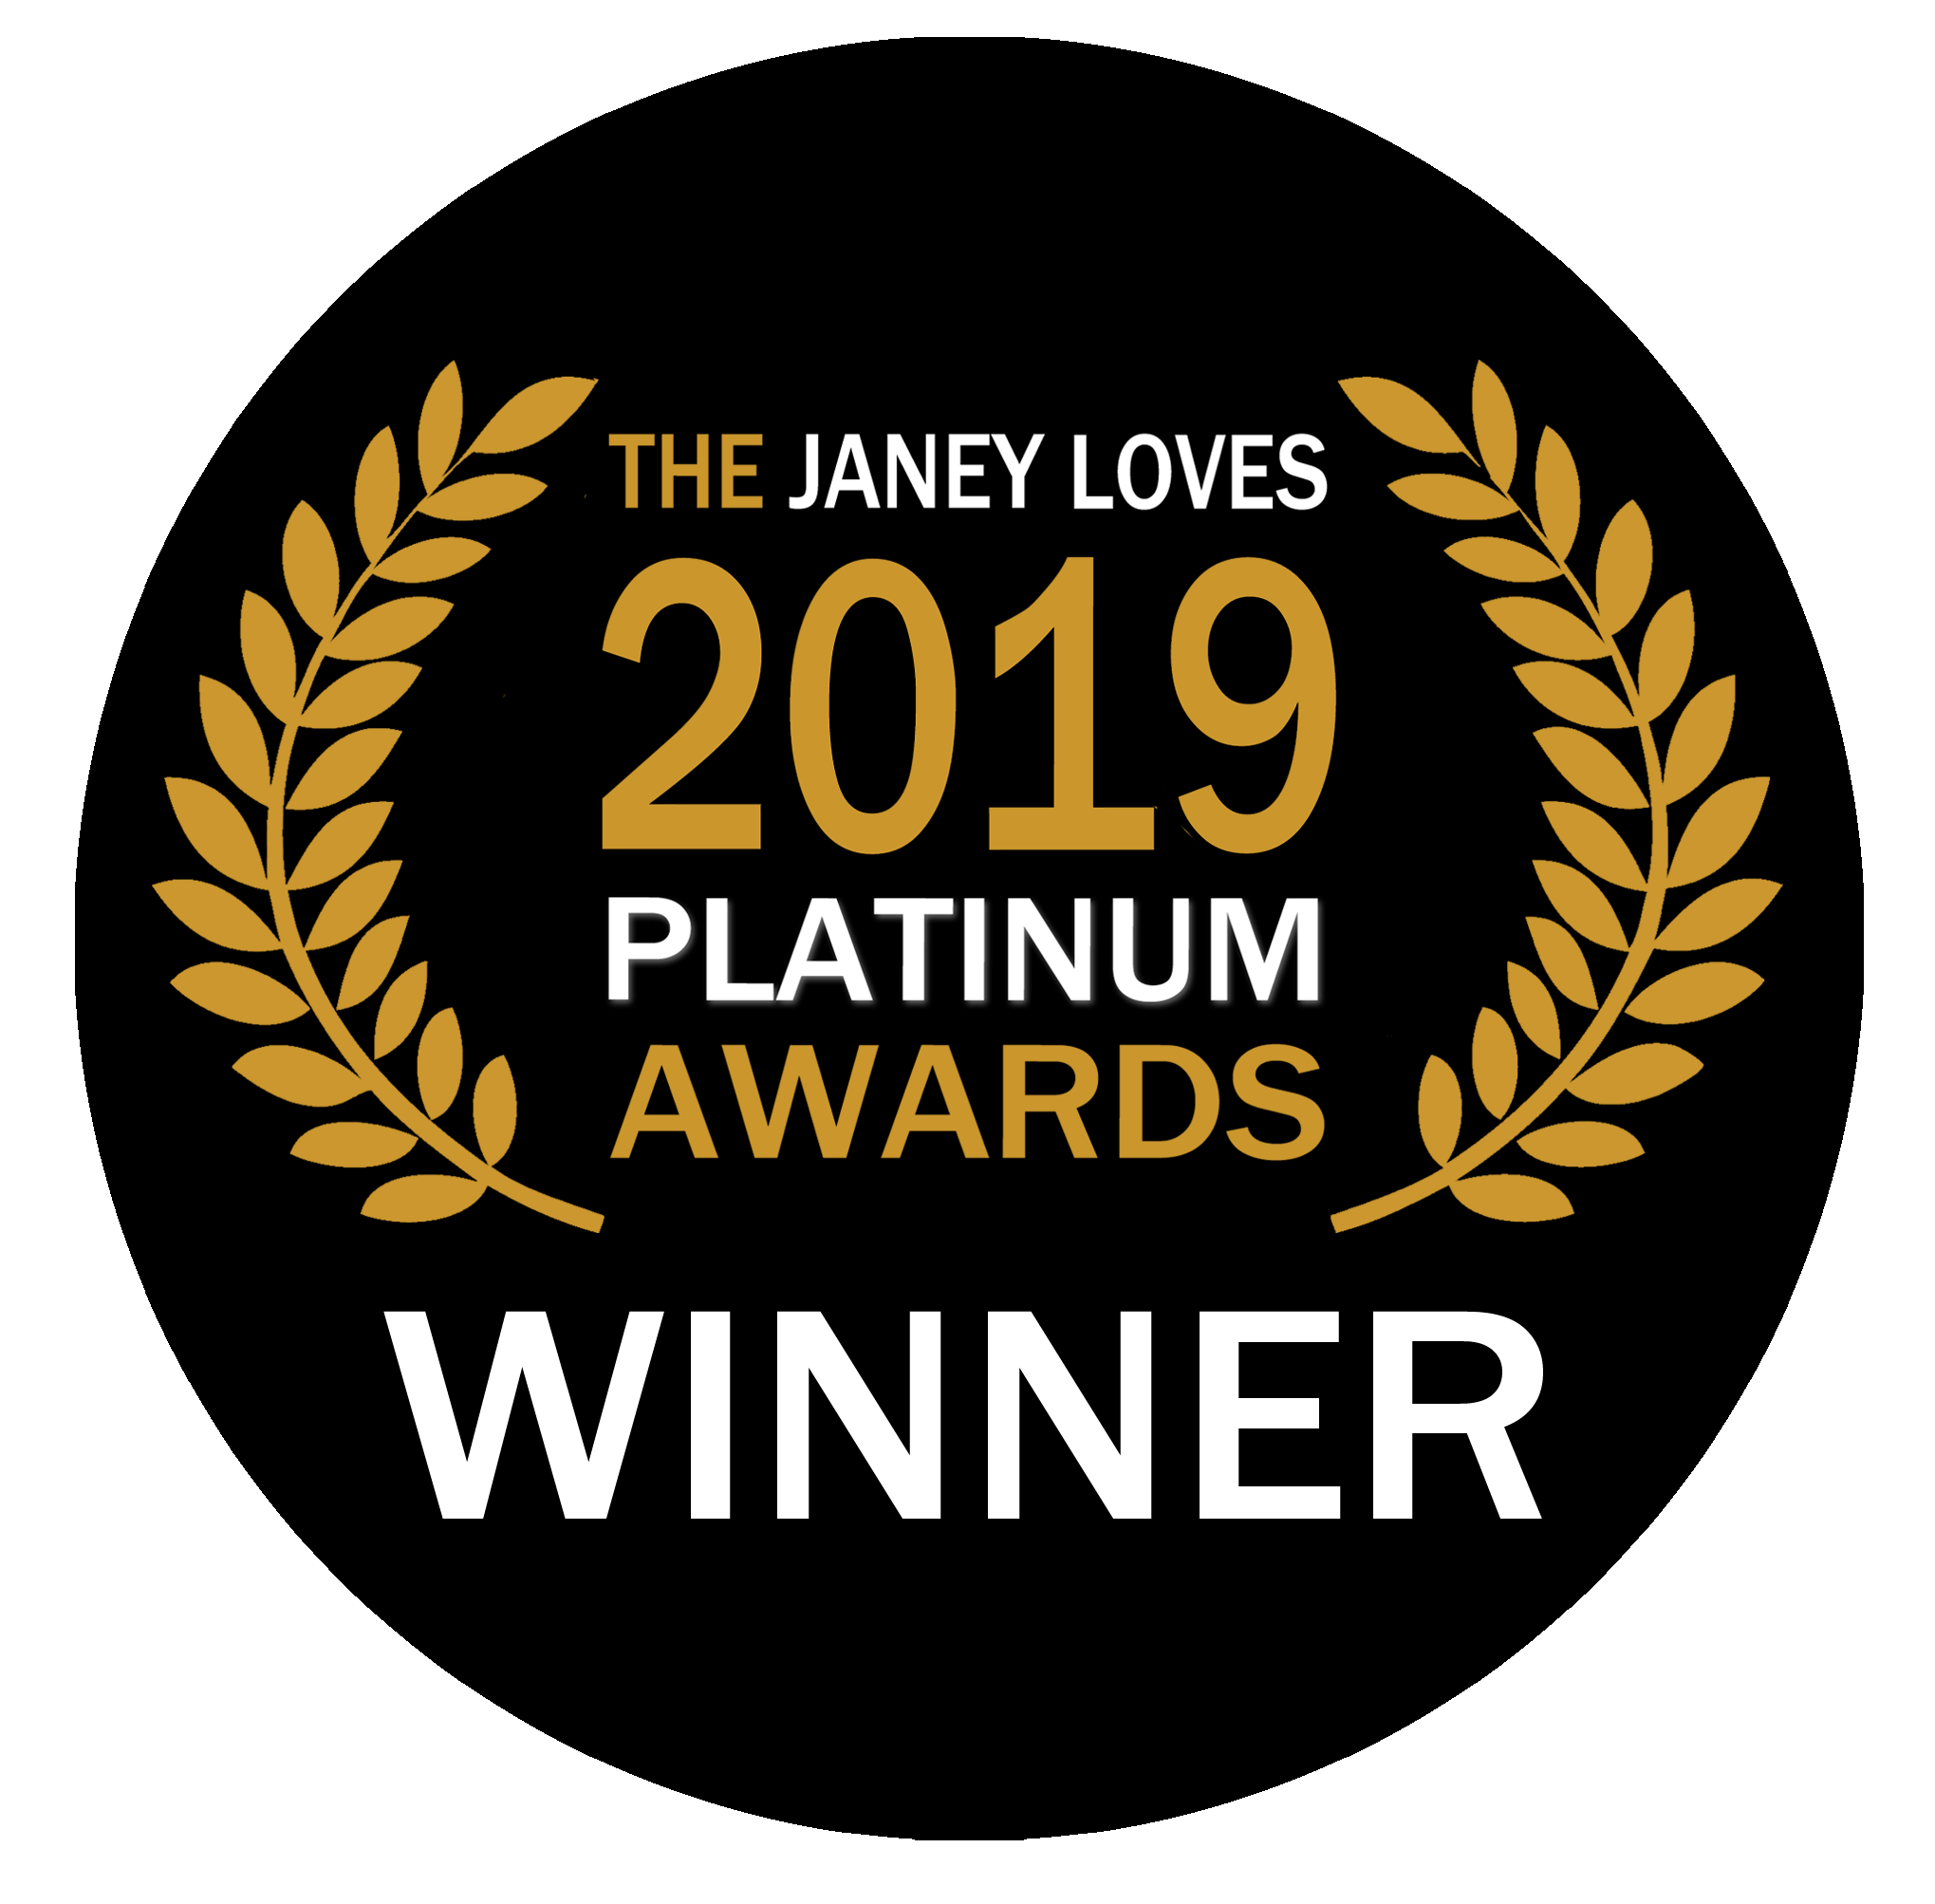 Transformer 28-5G Winner of the Janey Loves 2019 PLATINUM Award for Best Home EMF Protection